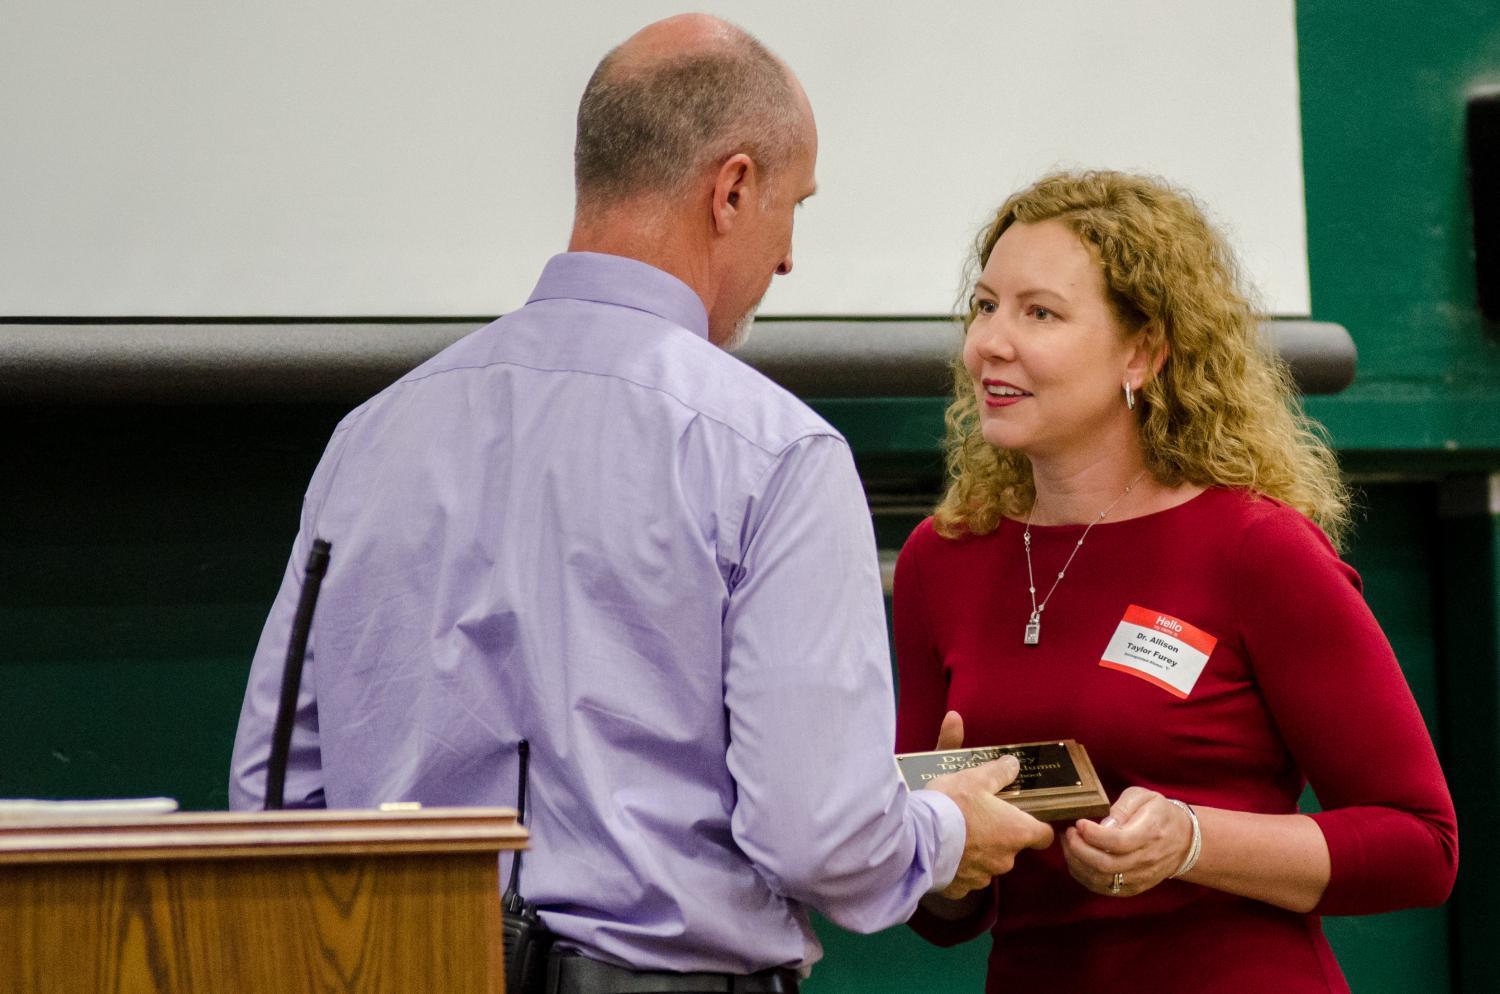 Dr. Allison Taylor Furey receives her Distinguished Alumni award at the Tiger Pride Assembly on April 28.